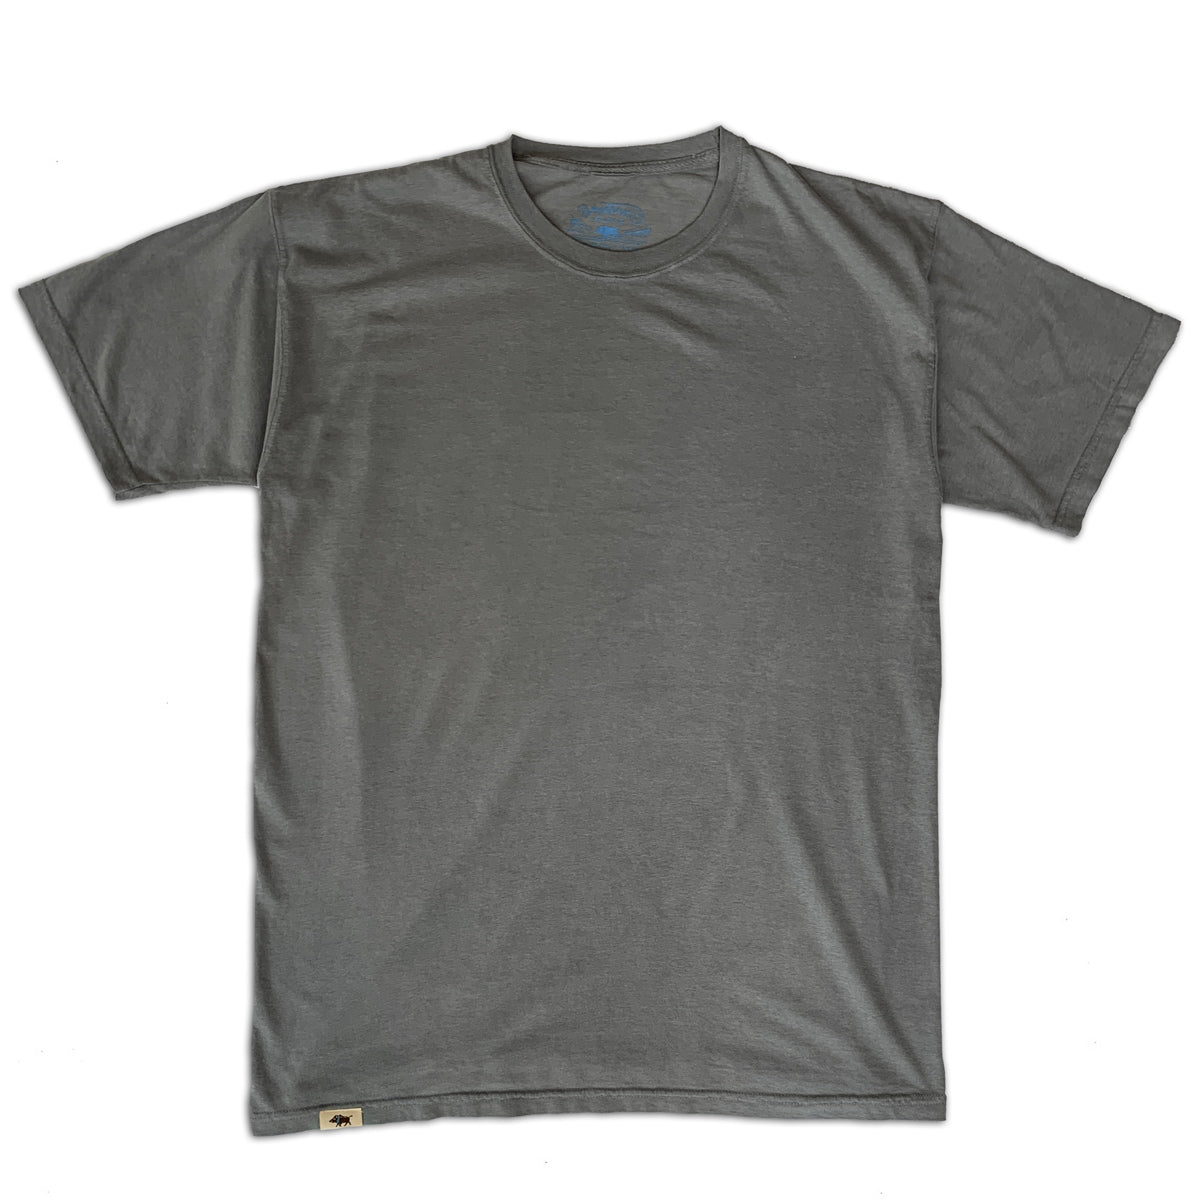 Men's Pigment Dyed Cotton Tee - Gray